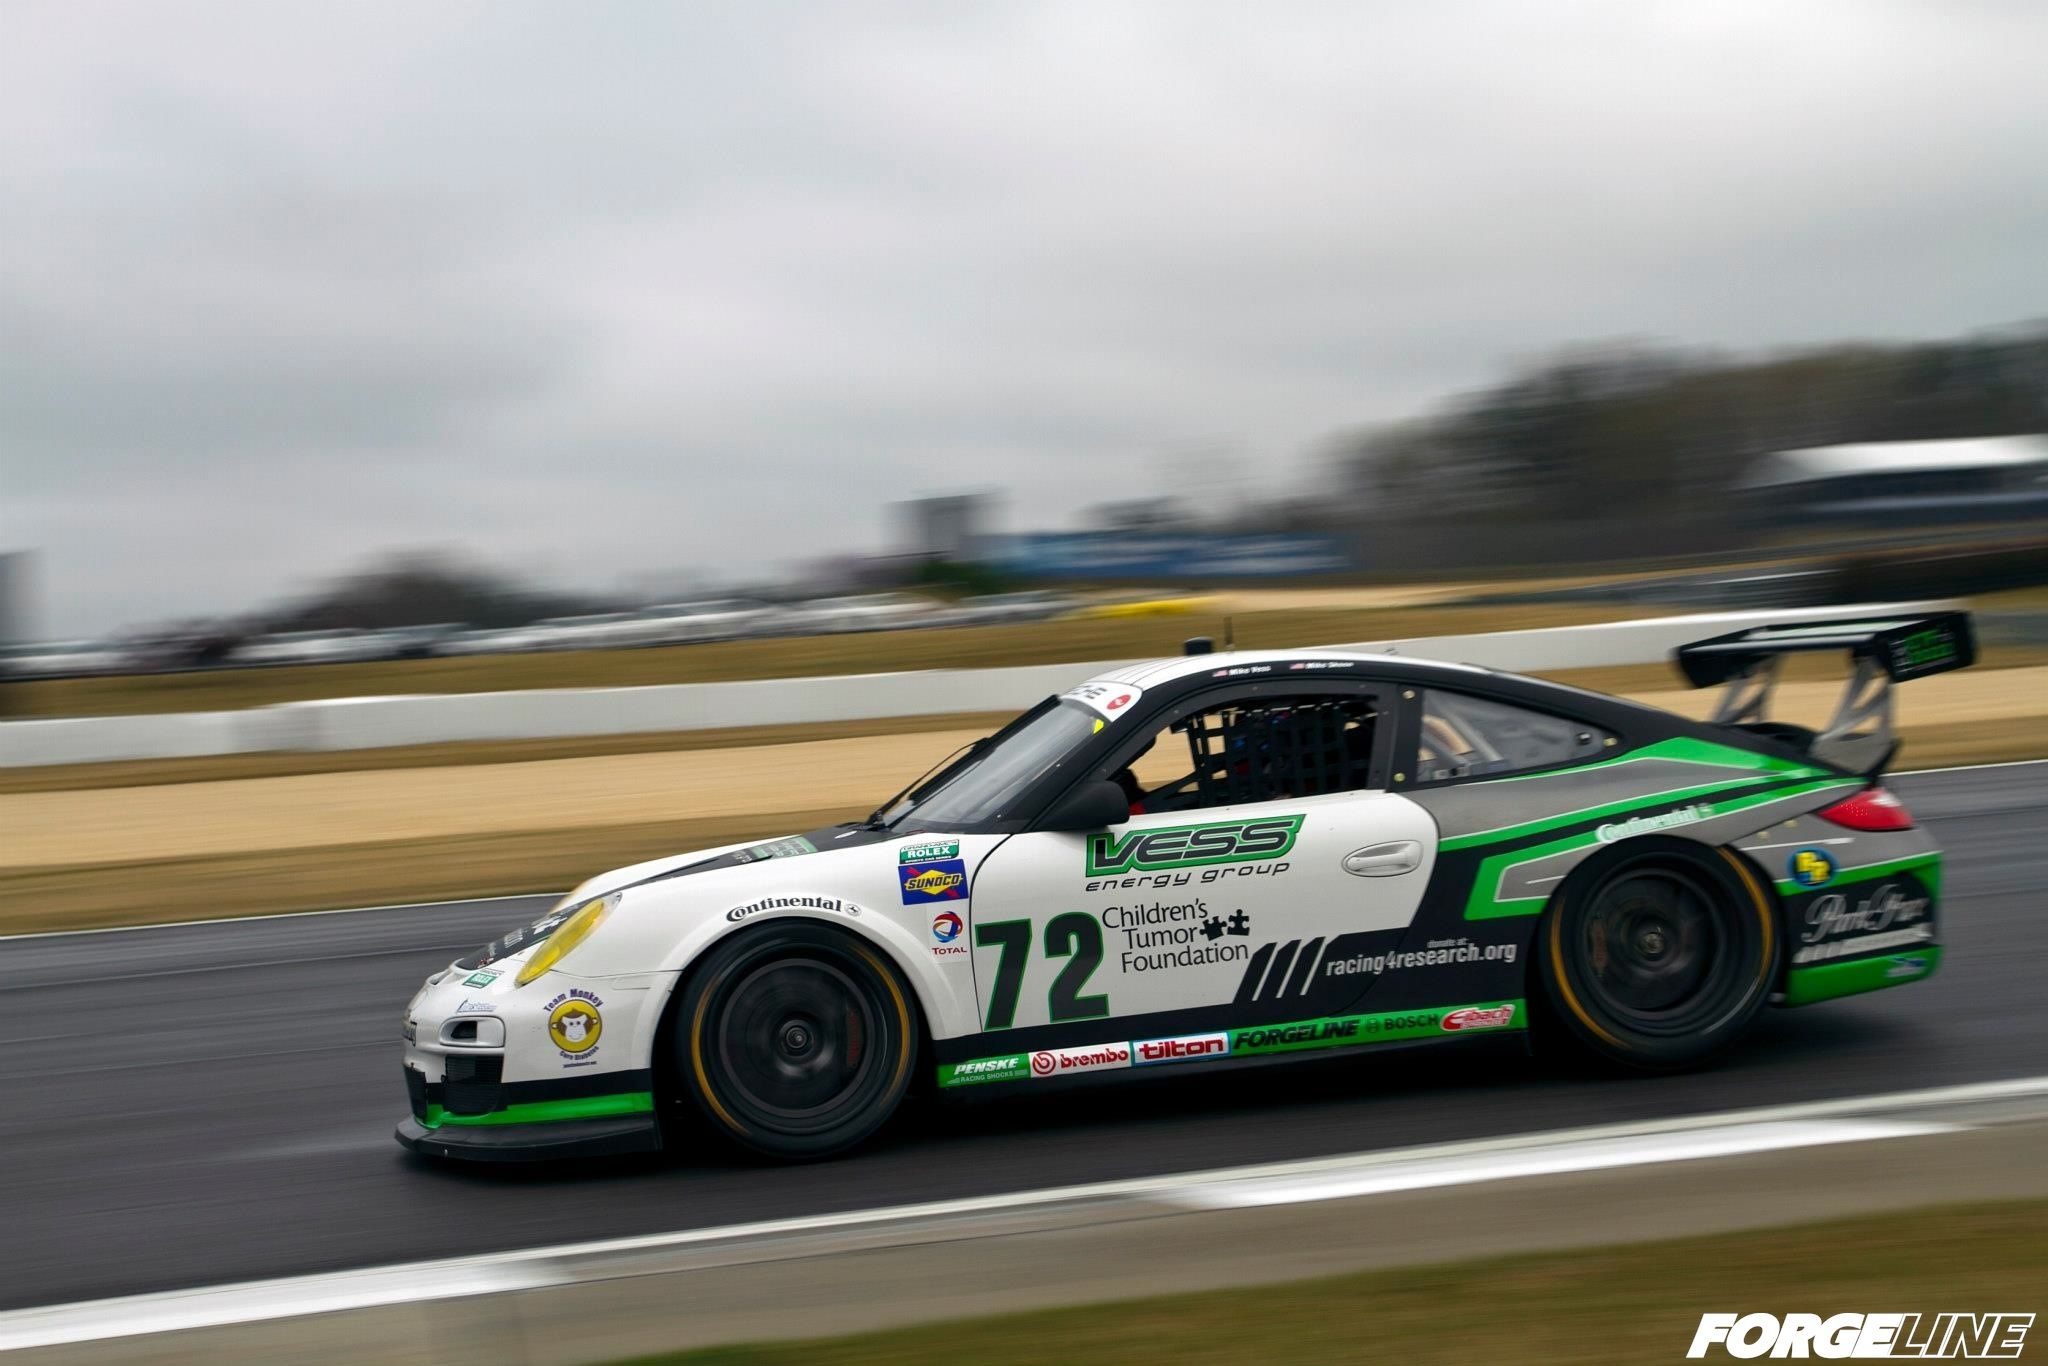 the park place motorsports 72 gt porsche giving these forgeline